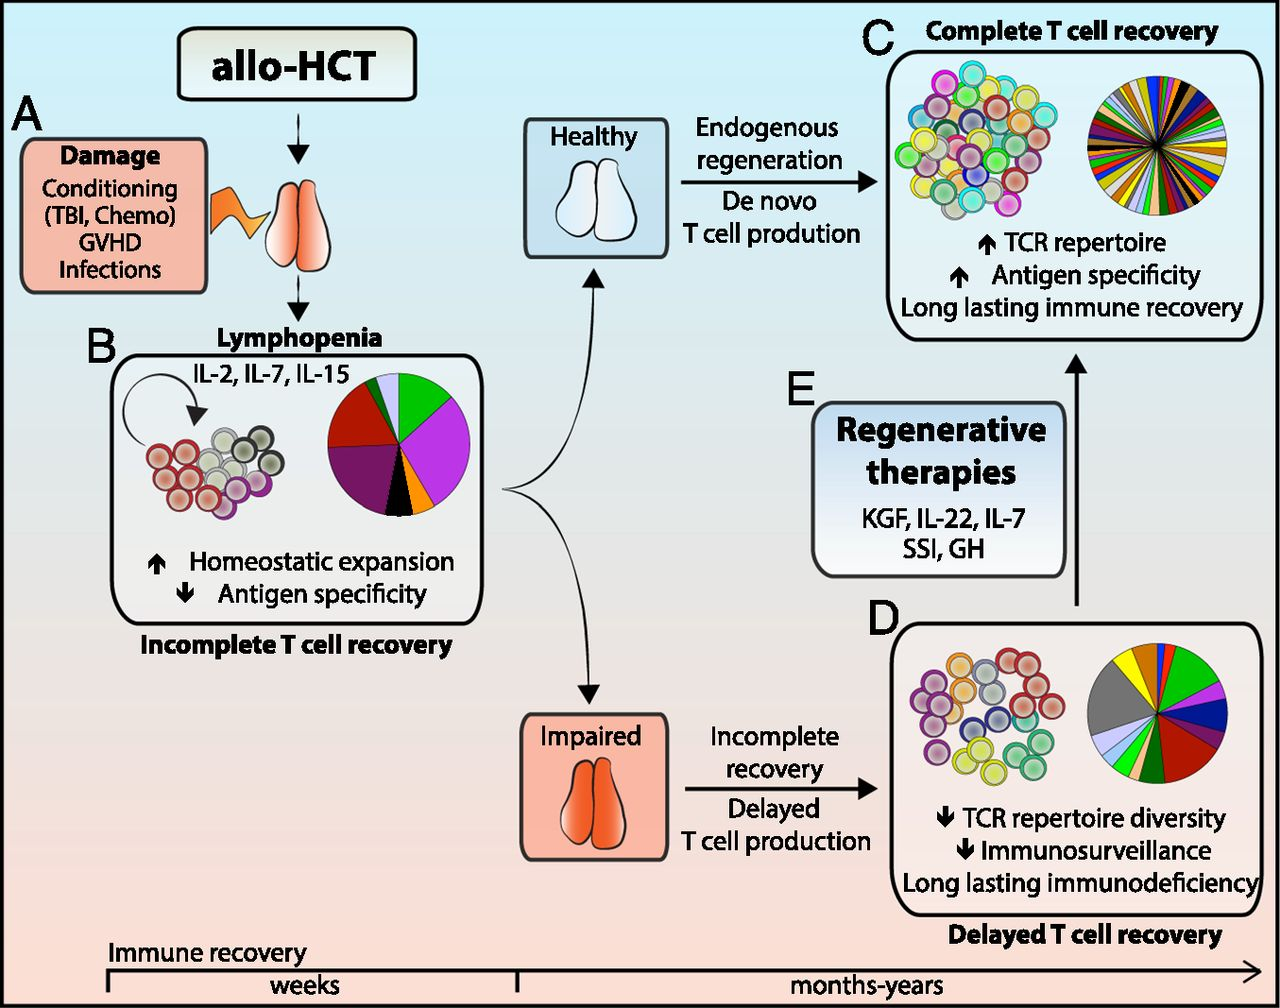 Immune Reconstitution After Allogeneic Hematopoietic Stem Cell Transplantation Time To T Up The Thymus The Journal Of Immunology